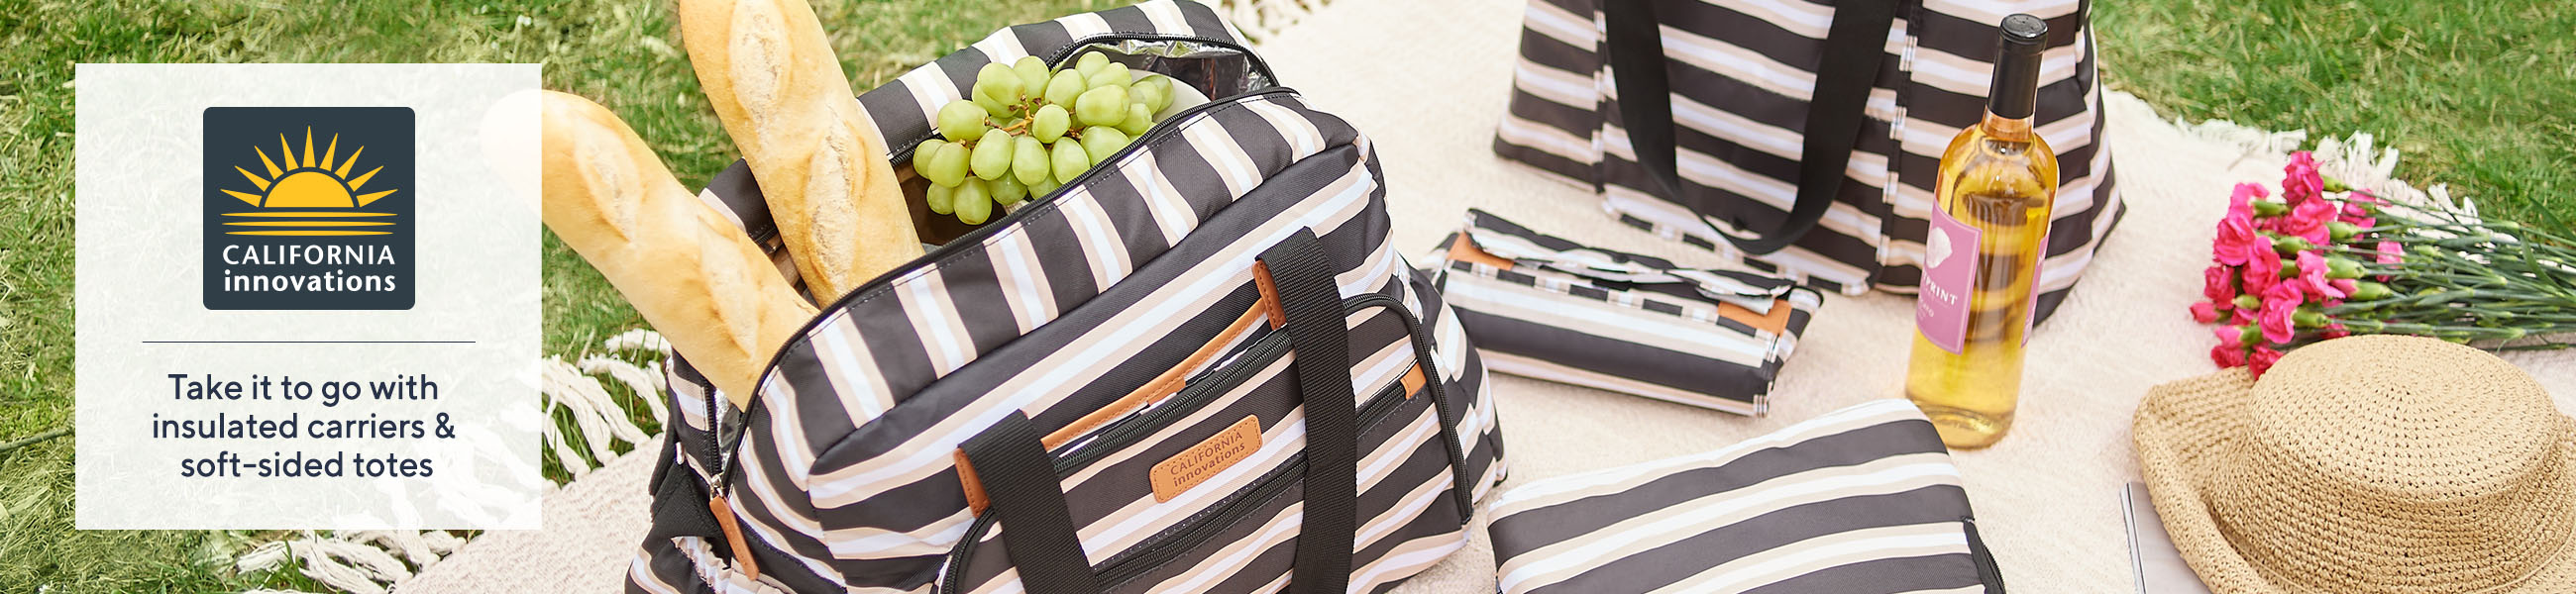 California Innovations Take it to go with insulated carriers & soft-sided totes